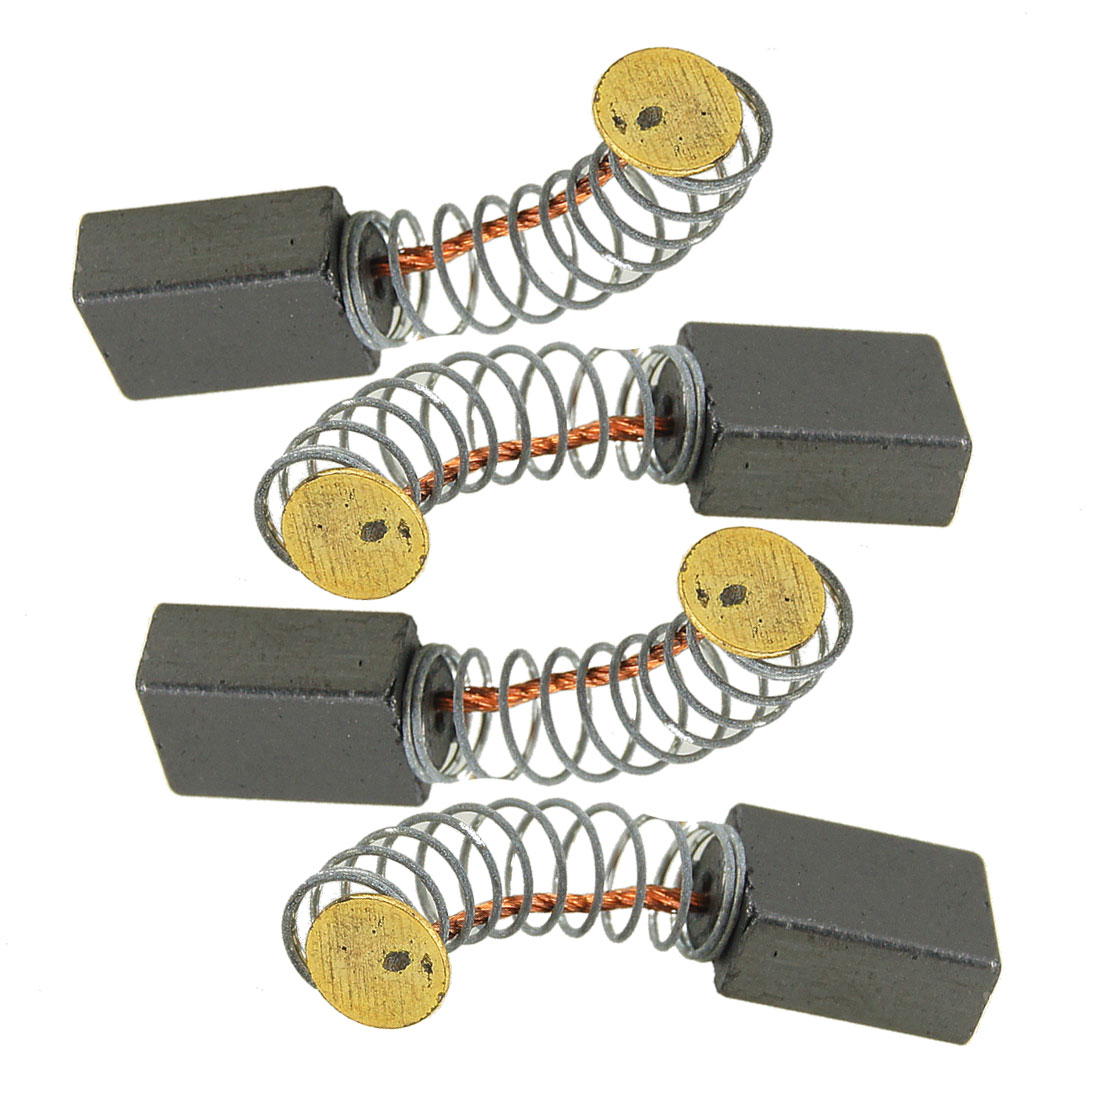 где купить Dmiotech 4 Pcs Replacement Electric Motor Carbon Brushes 10mm 11mm 13mm 6mm 7.5mm 7mm 8mm 9mm For Motors дешево